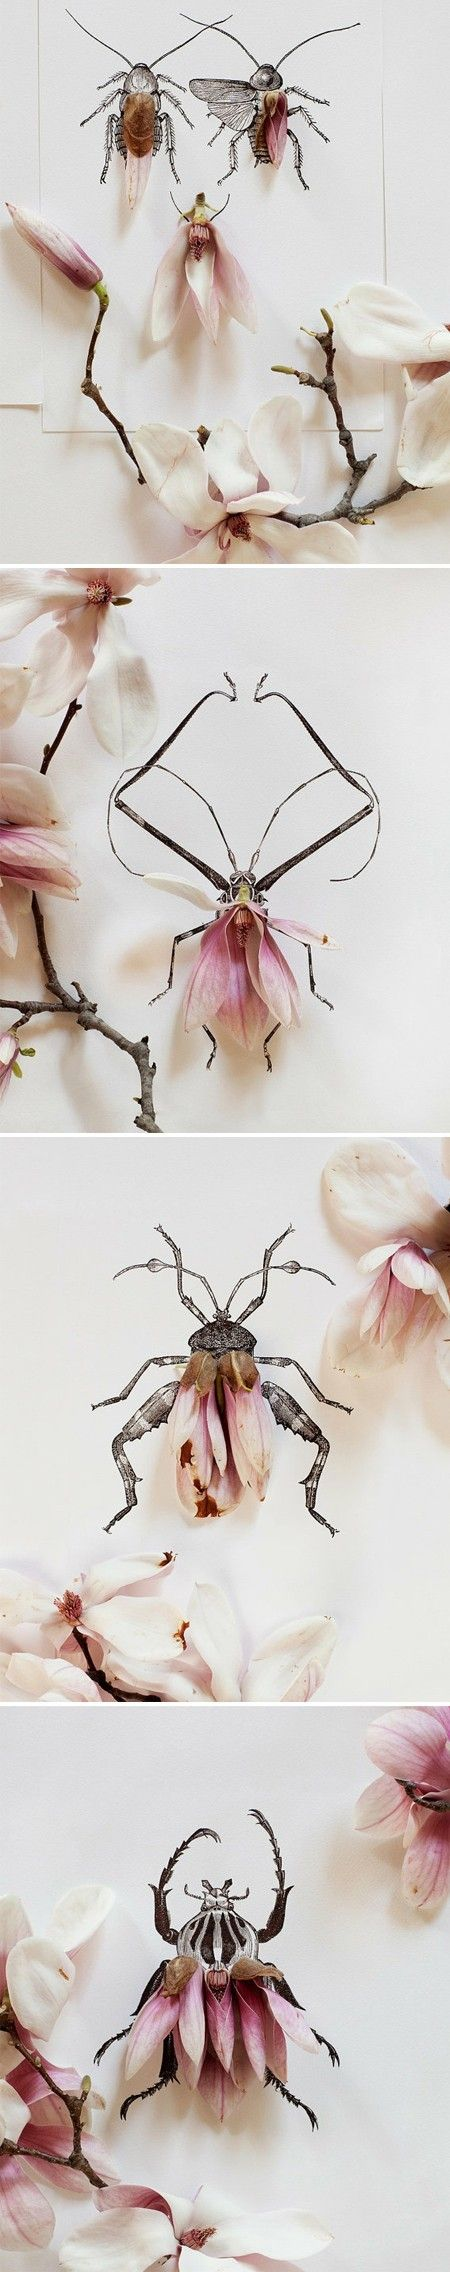 best raw craft images on pinterest